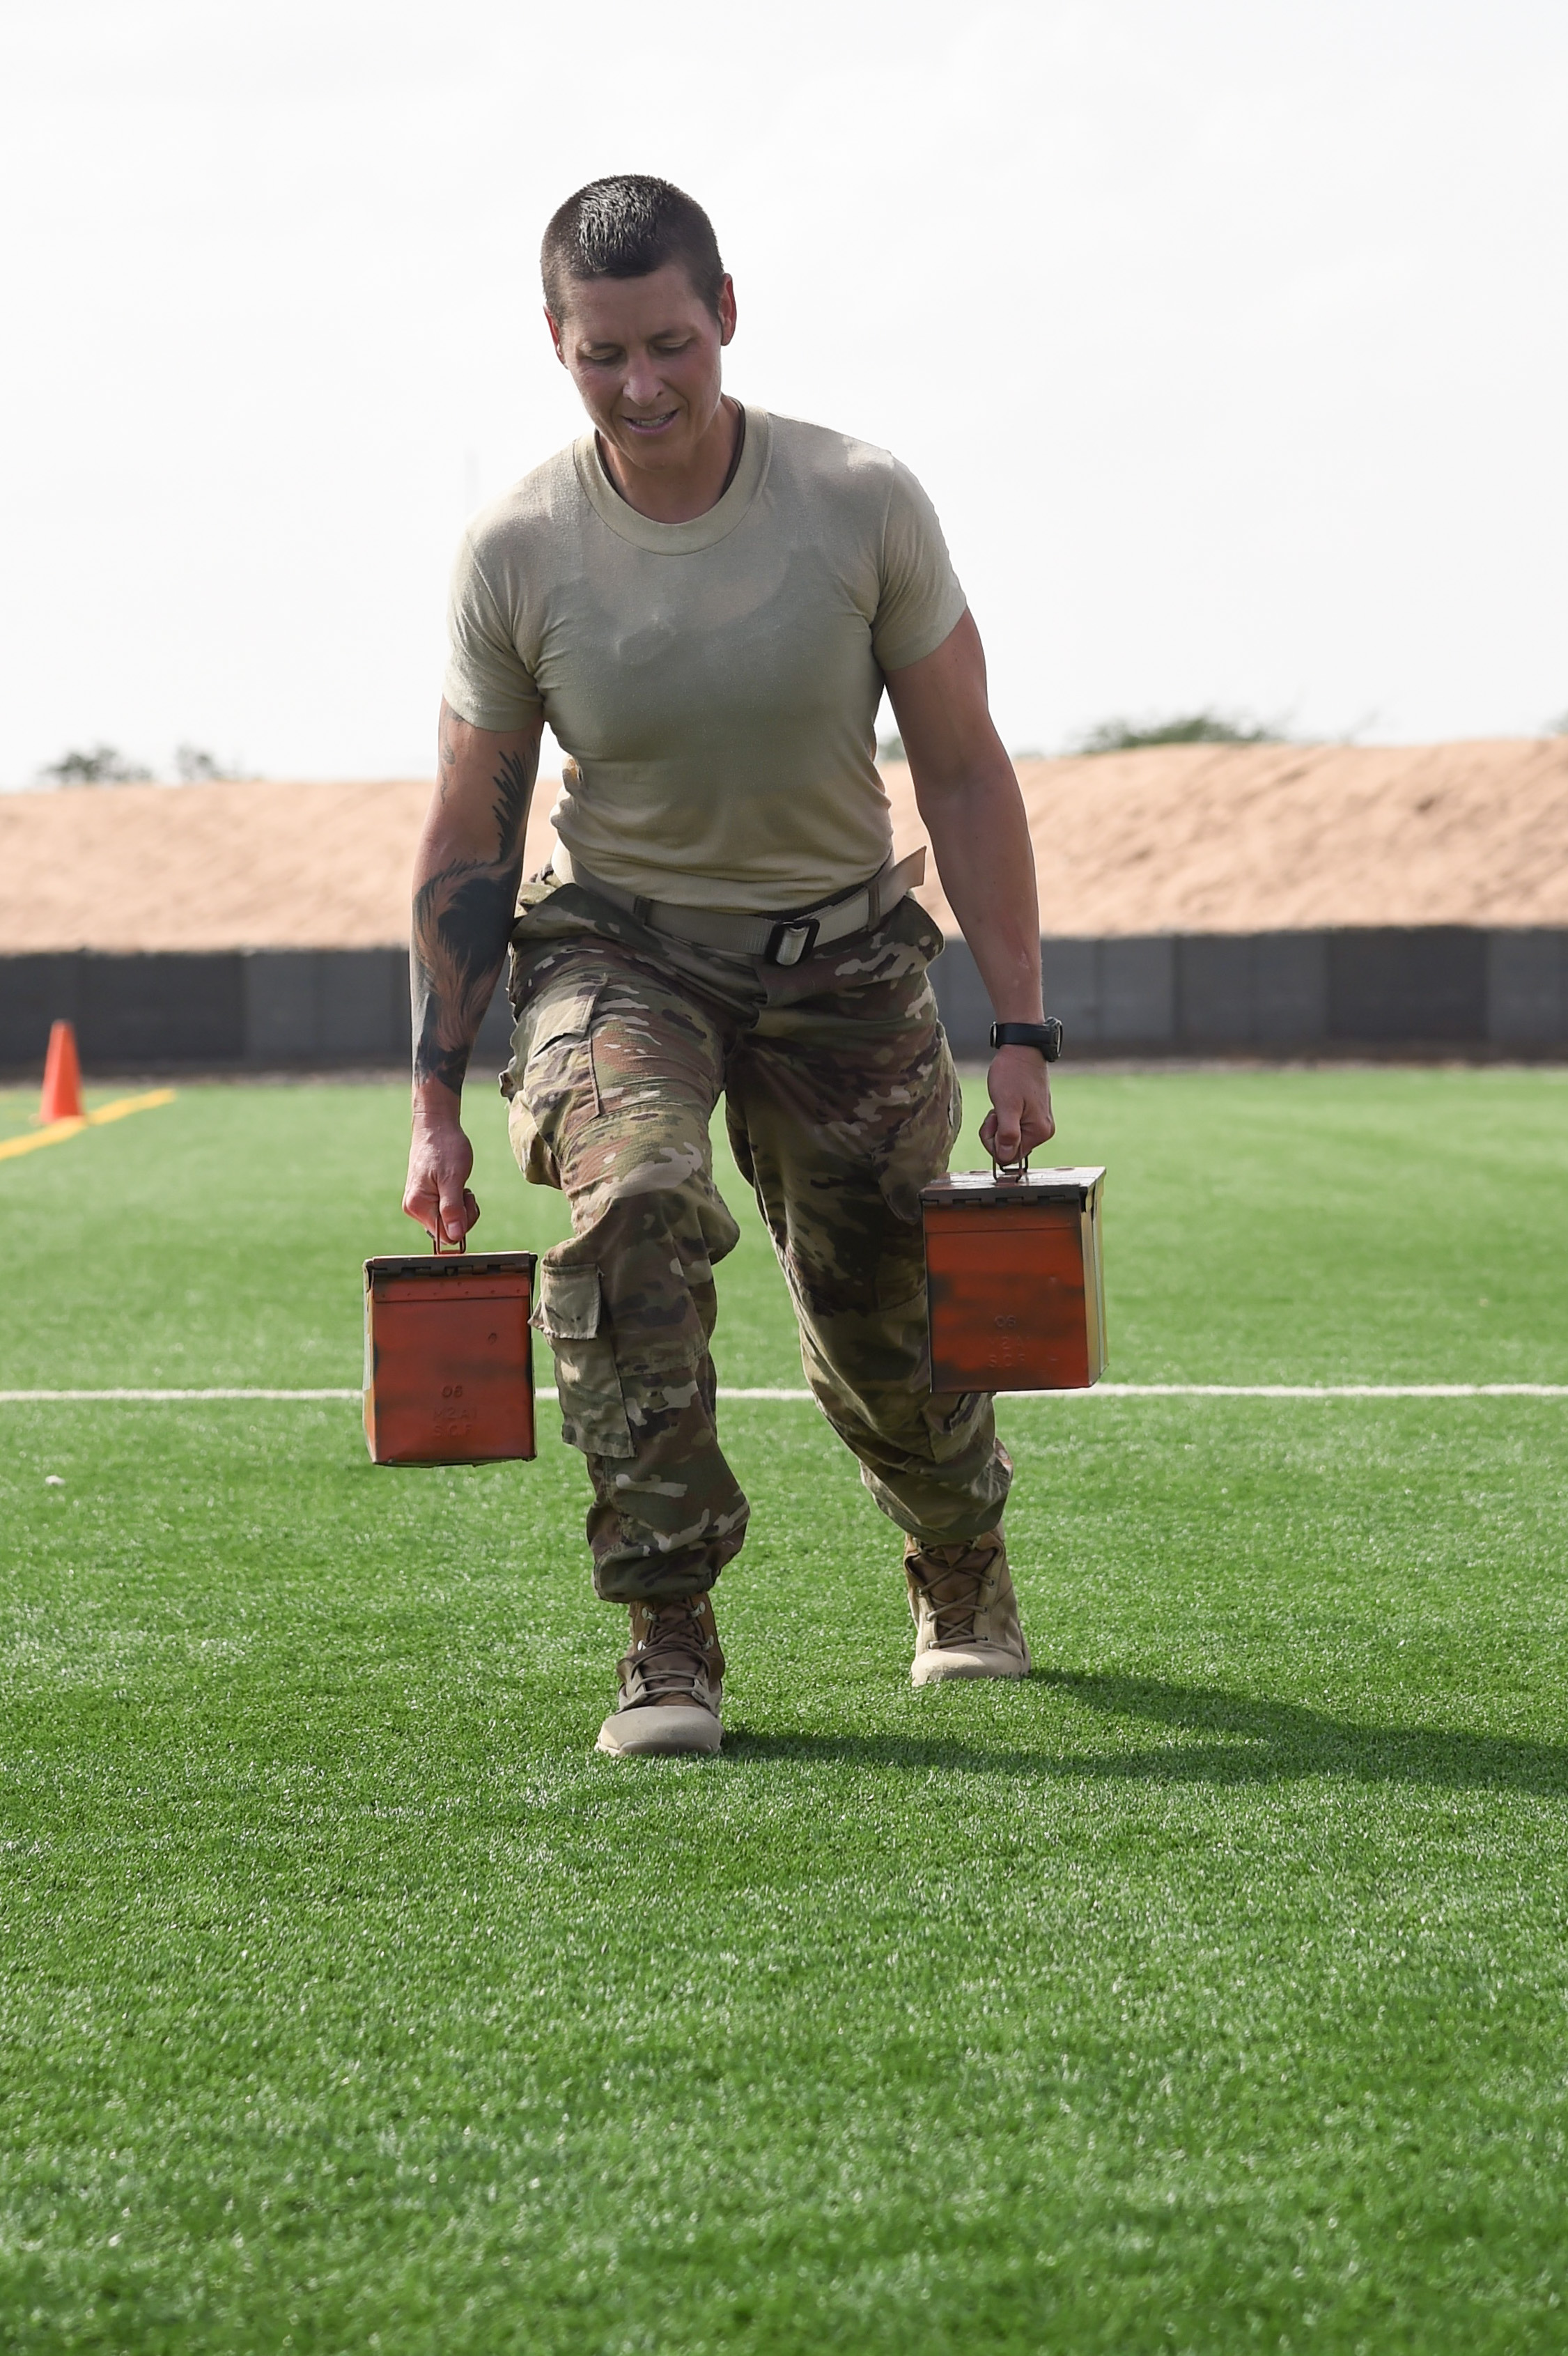 U.S. Army Staff Sgt. Hannah Mabel, Combined Joint Task Force-Horn of Africa, lunges 50 meters with ammo cans during the Joint Warrior Competition, Nov. 19, 2016, Camp Lemonnier, Djibouti. After the joint physical fitness test, participants started the joint combat fitness test. The combat test was comprised of a low crawl, tourniquet application, buddy carry, radio medical evacuation, grenade toss, tire flip, ammo can carry, dead lift, and rope climb. (U.S. Air National Guard photo by Staff Sgt. Penny Snoozy)